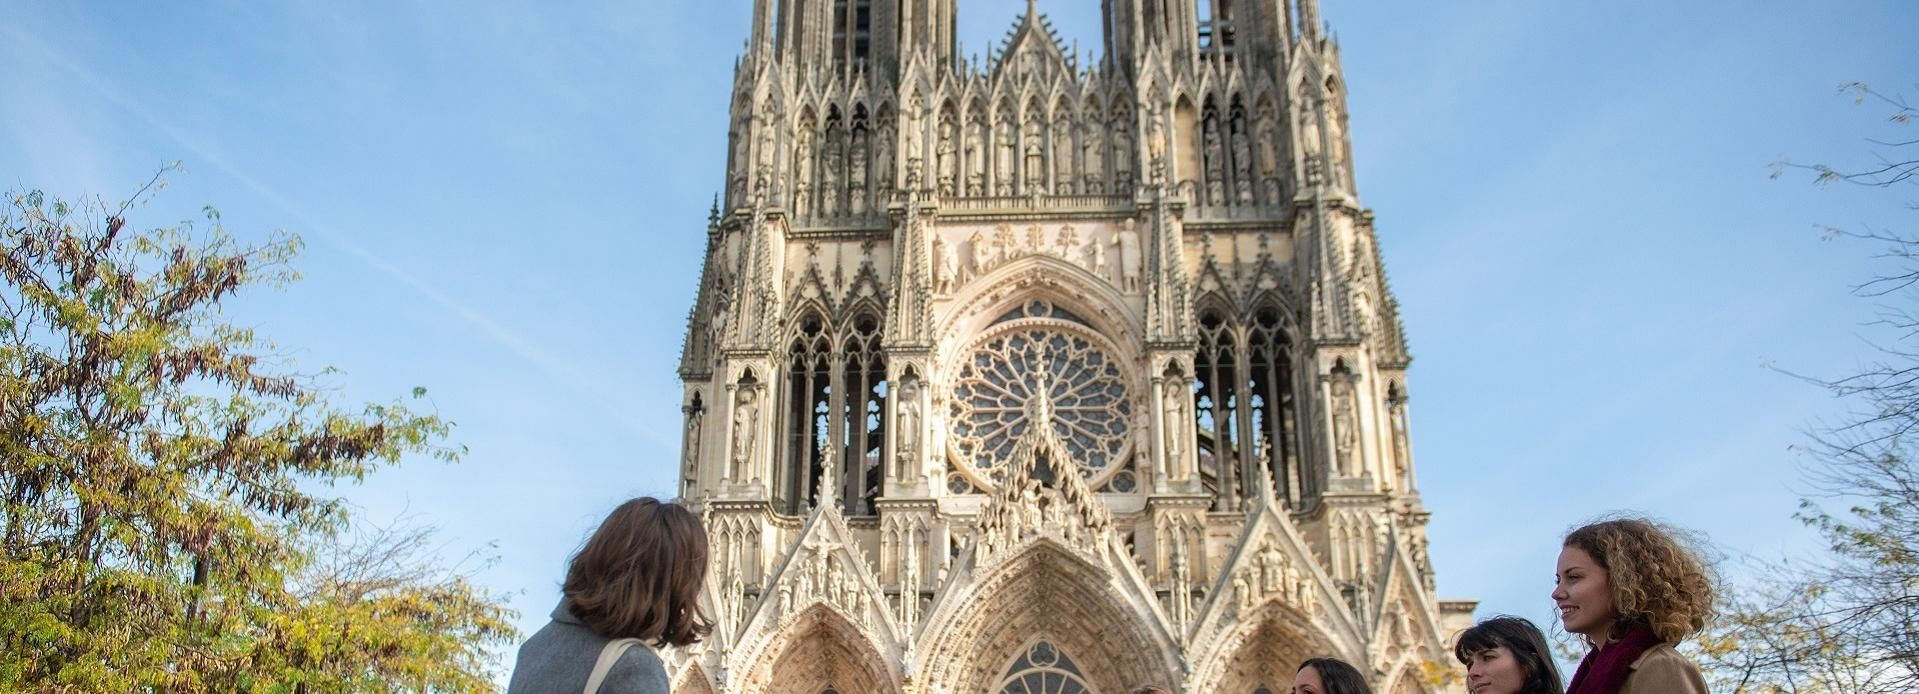 Reims Champagne Full-Day Tour from Paris